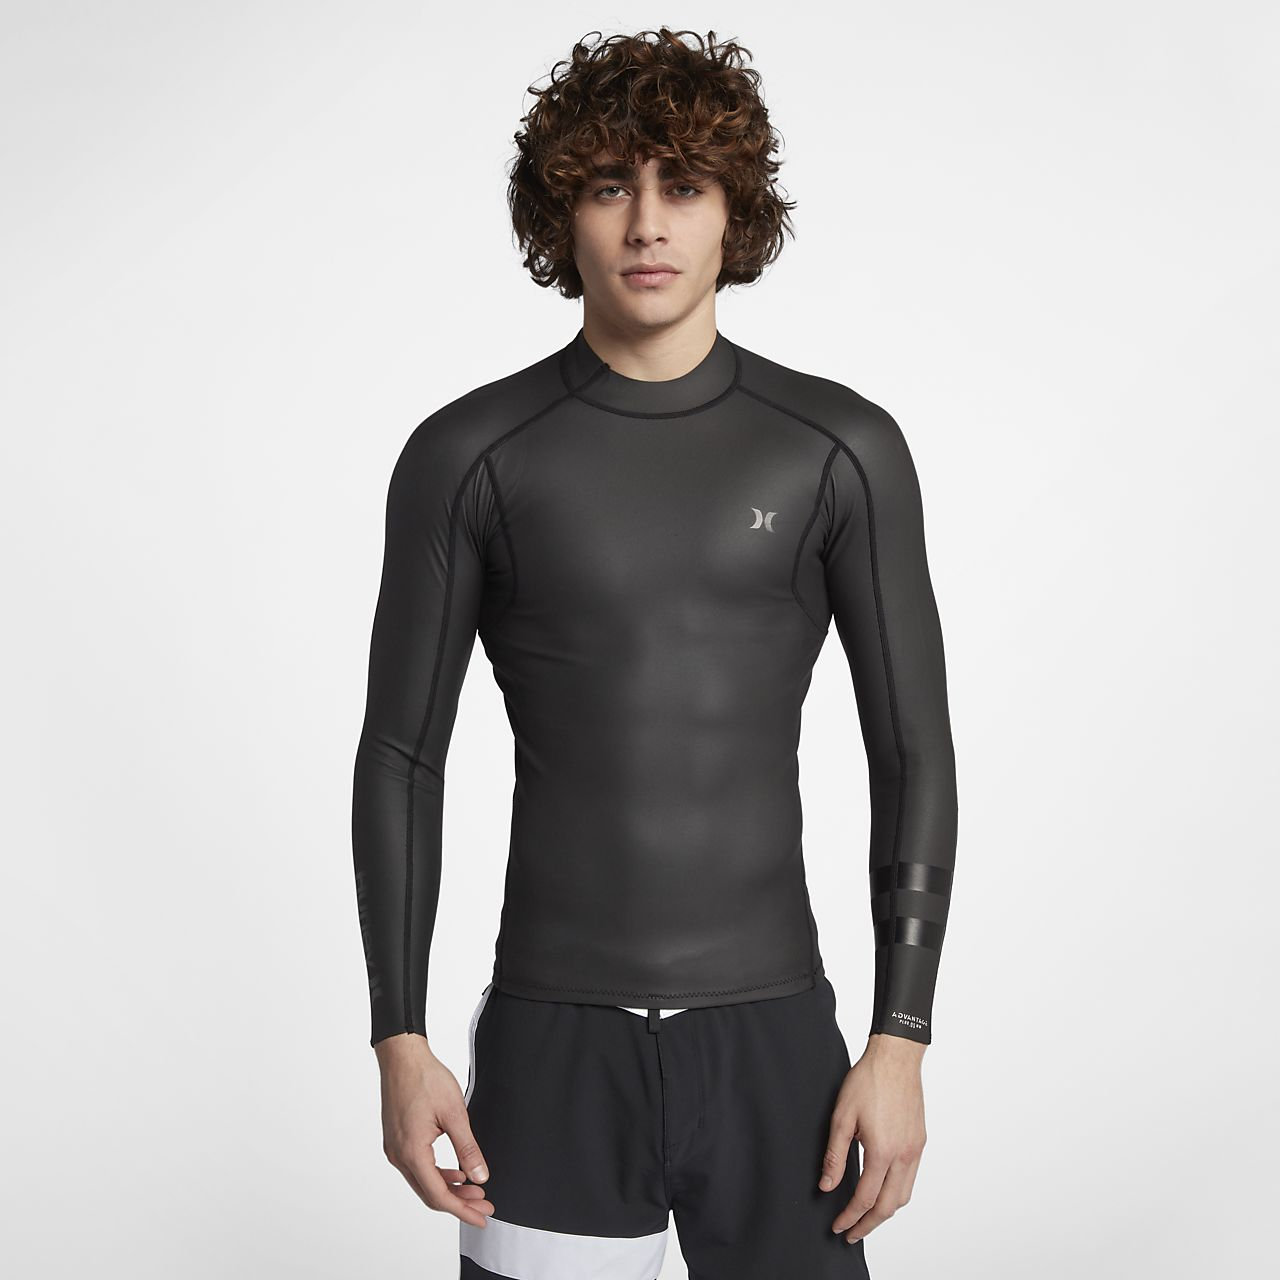 Hurley Advantage Plus Windskin Jacket Men's Wetsuit